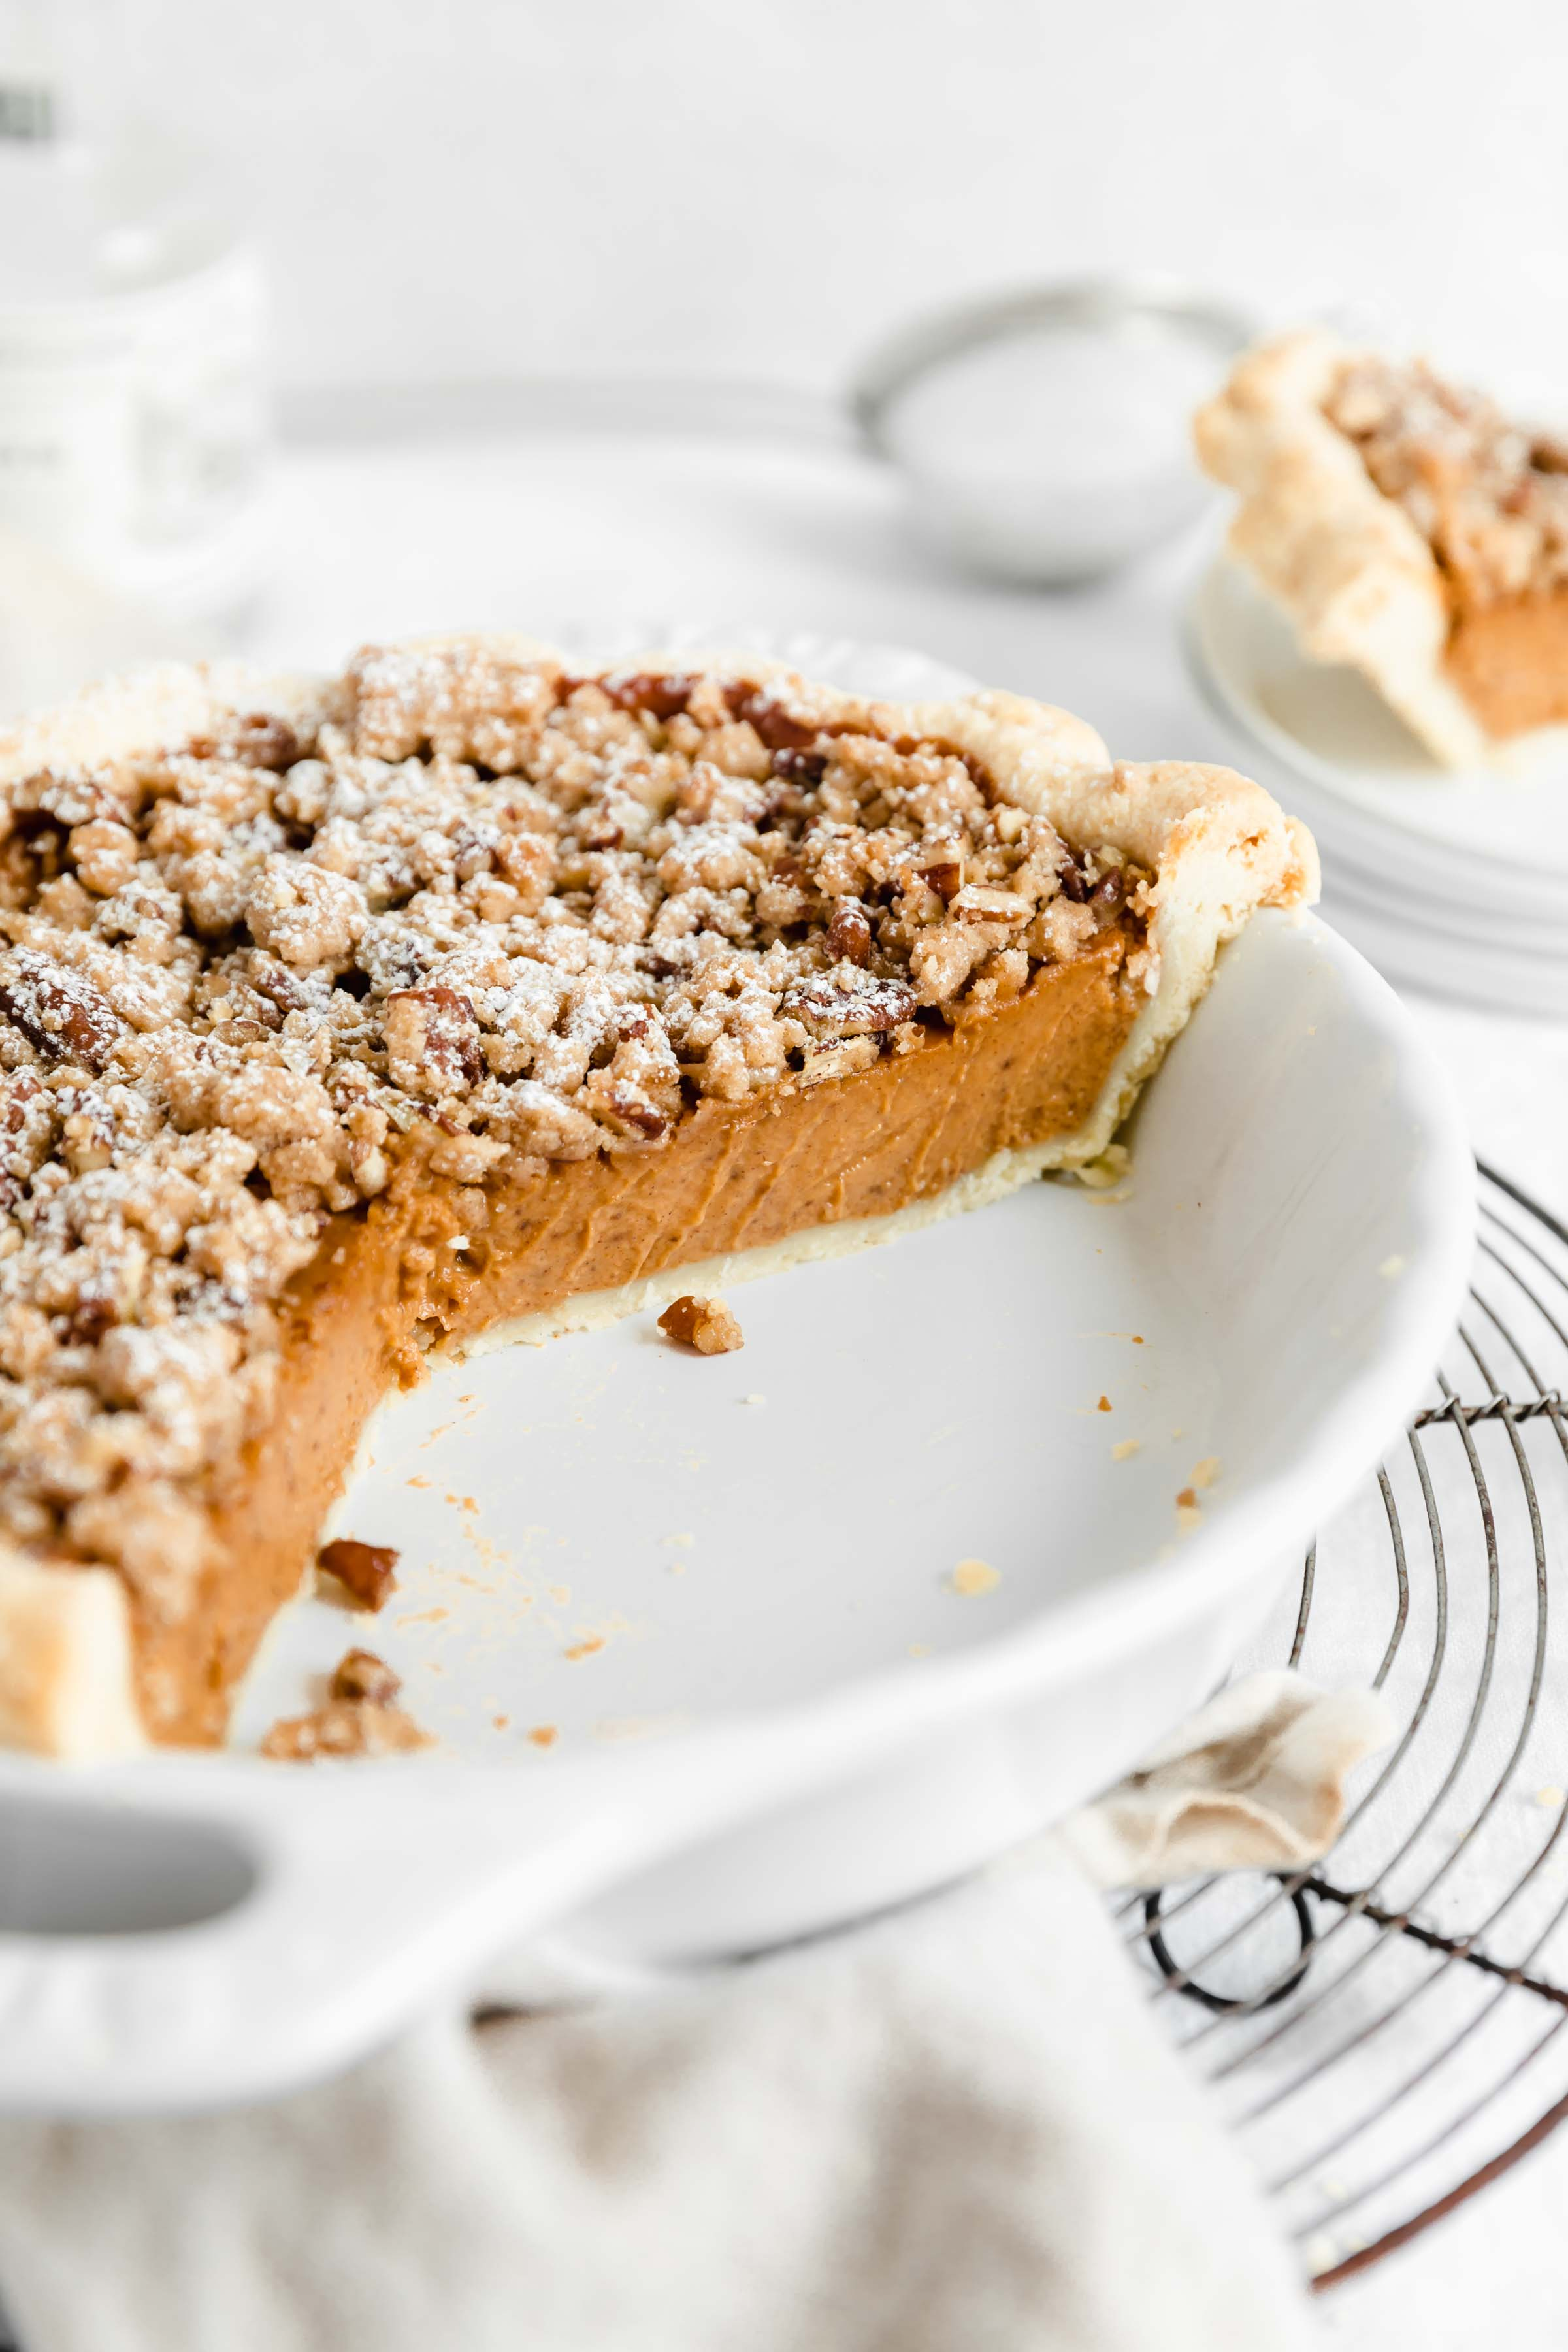 Creamy sweet potato pie with a delicious, crunchy almond streusel. Perfect for the holidays or using up some leftover sweet potatoes!